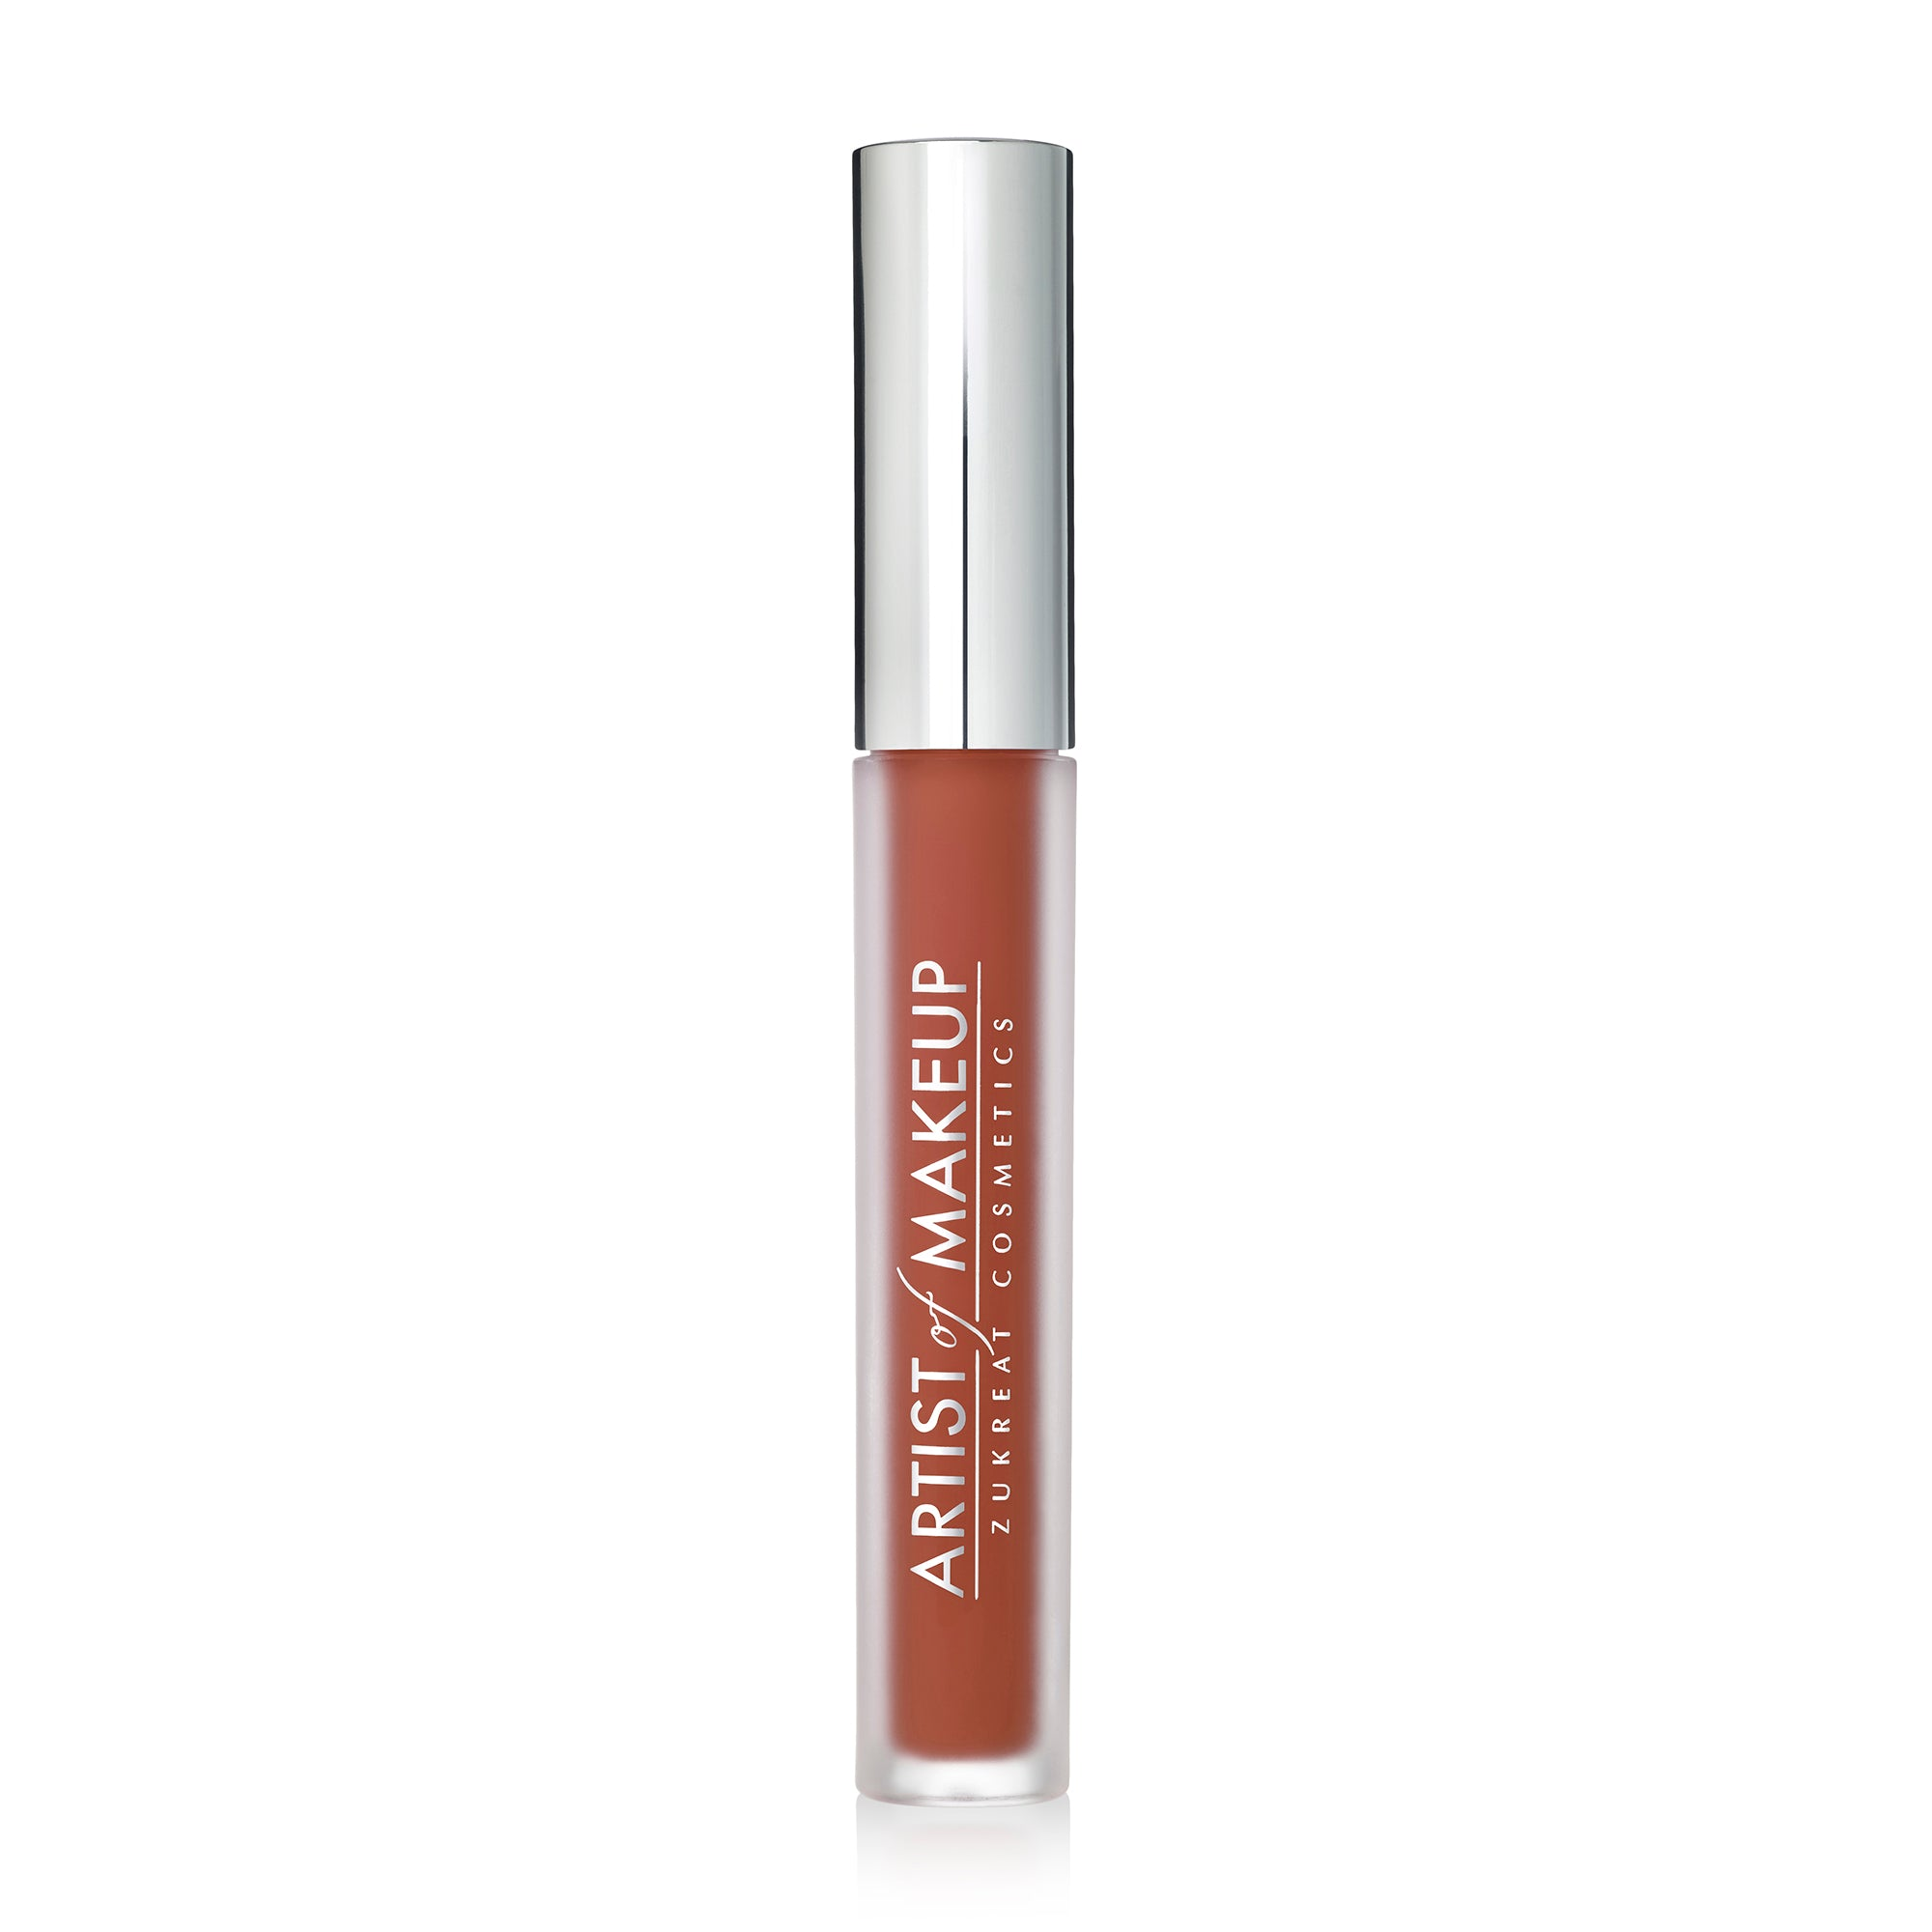 Empowered - Extreme Matte Liquid Lipstick